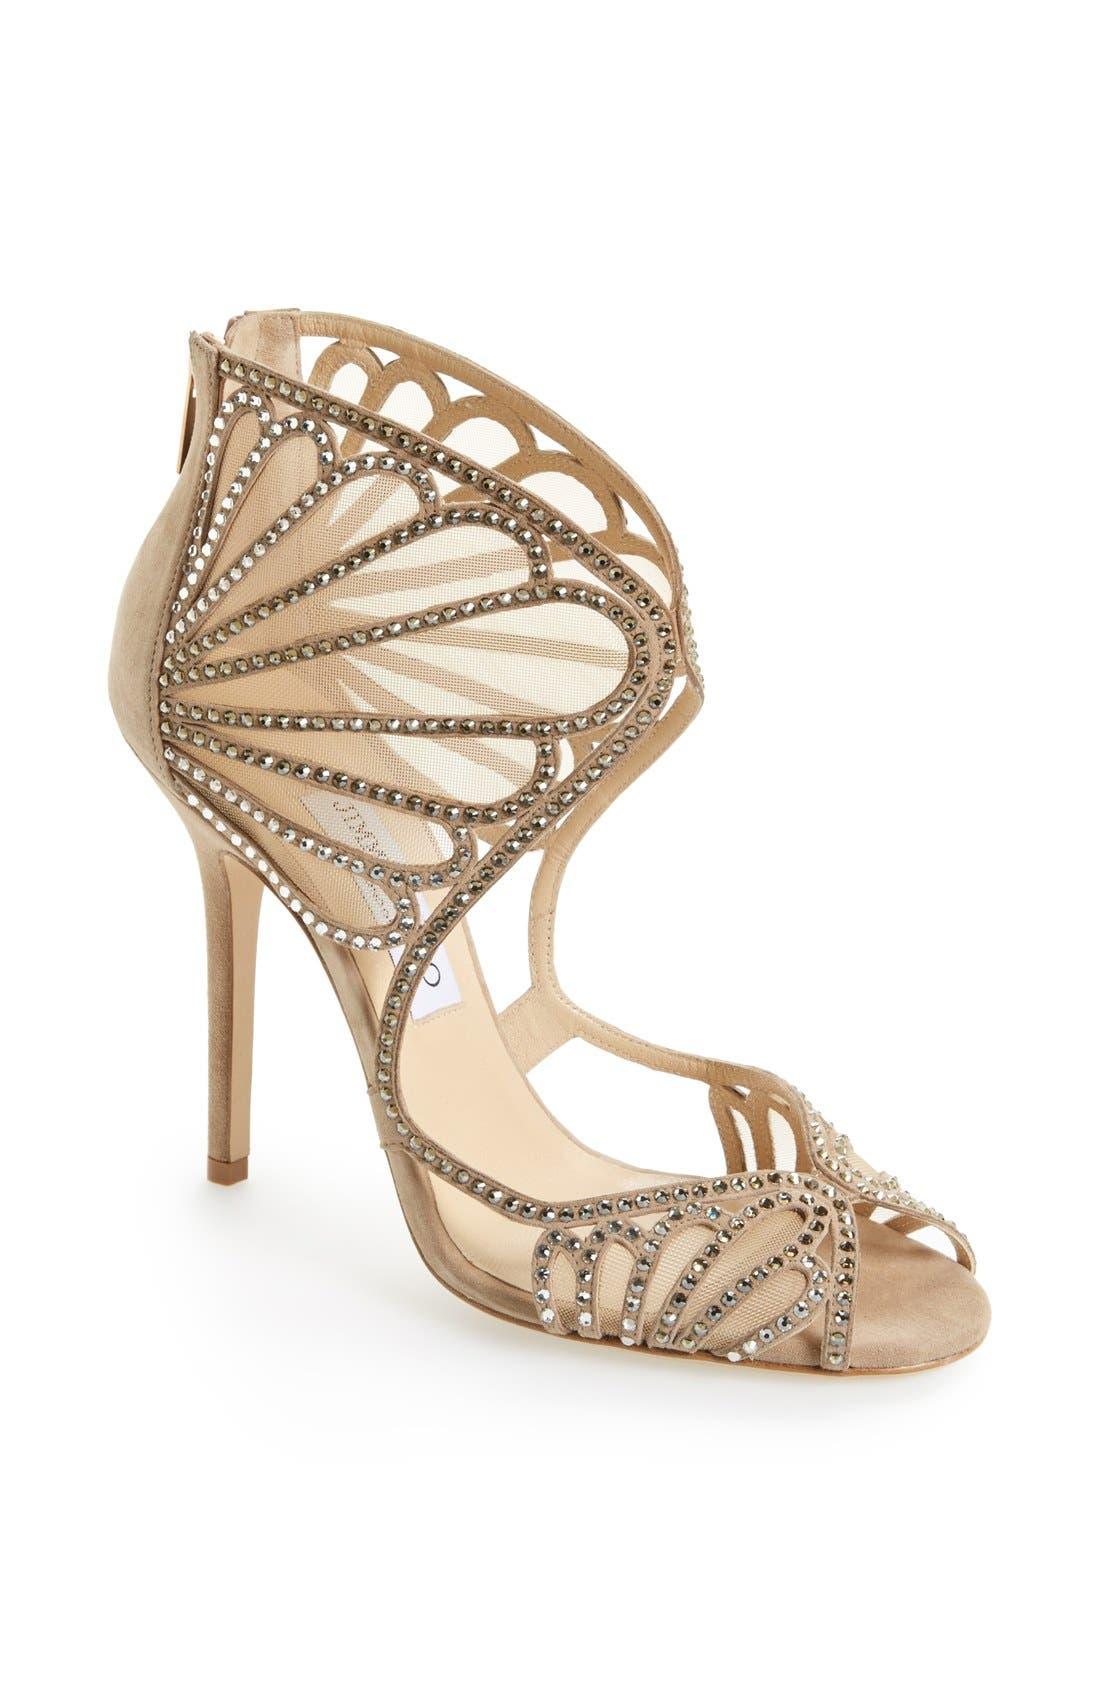 Alternate Image 1 Selected - Jimmy Choo 'Kole' Sandal